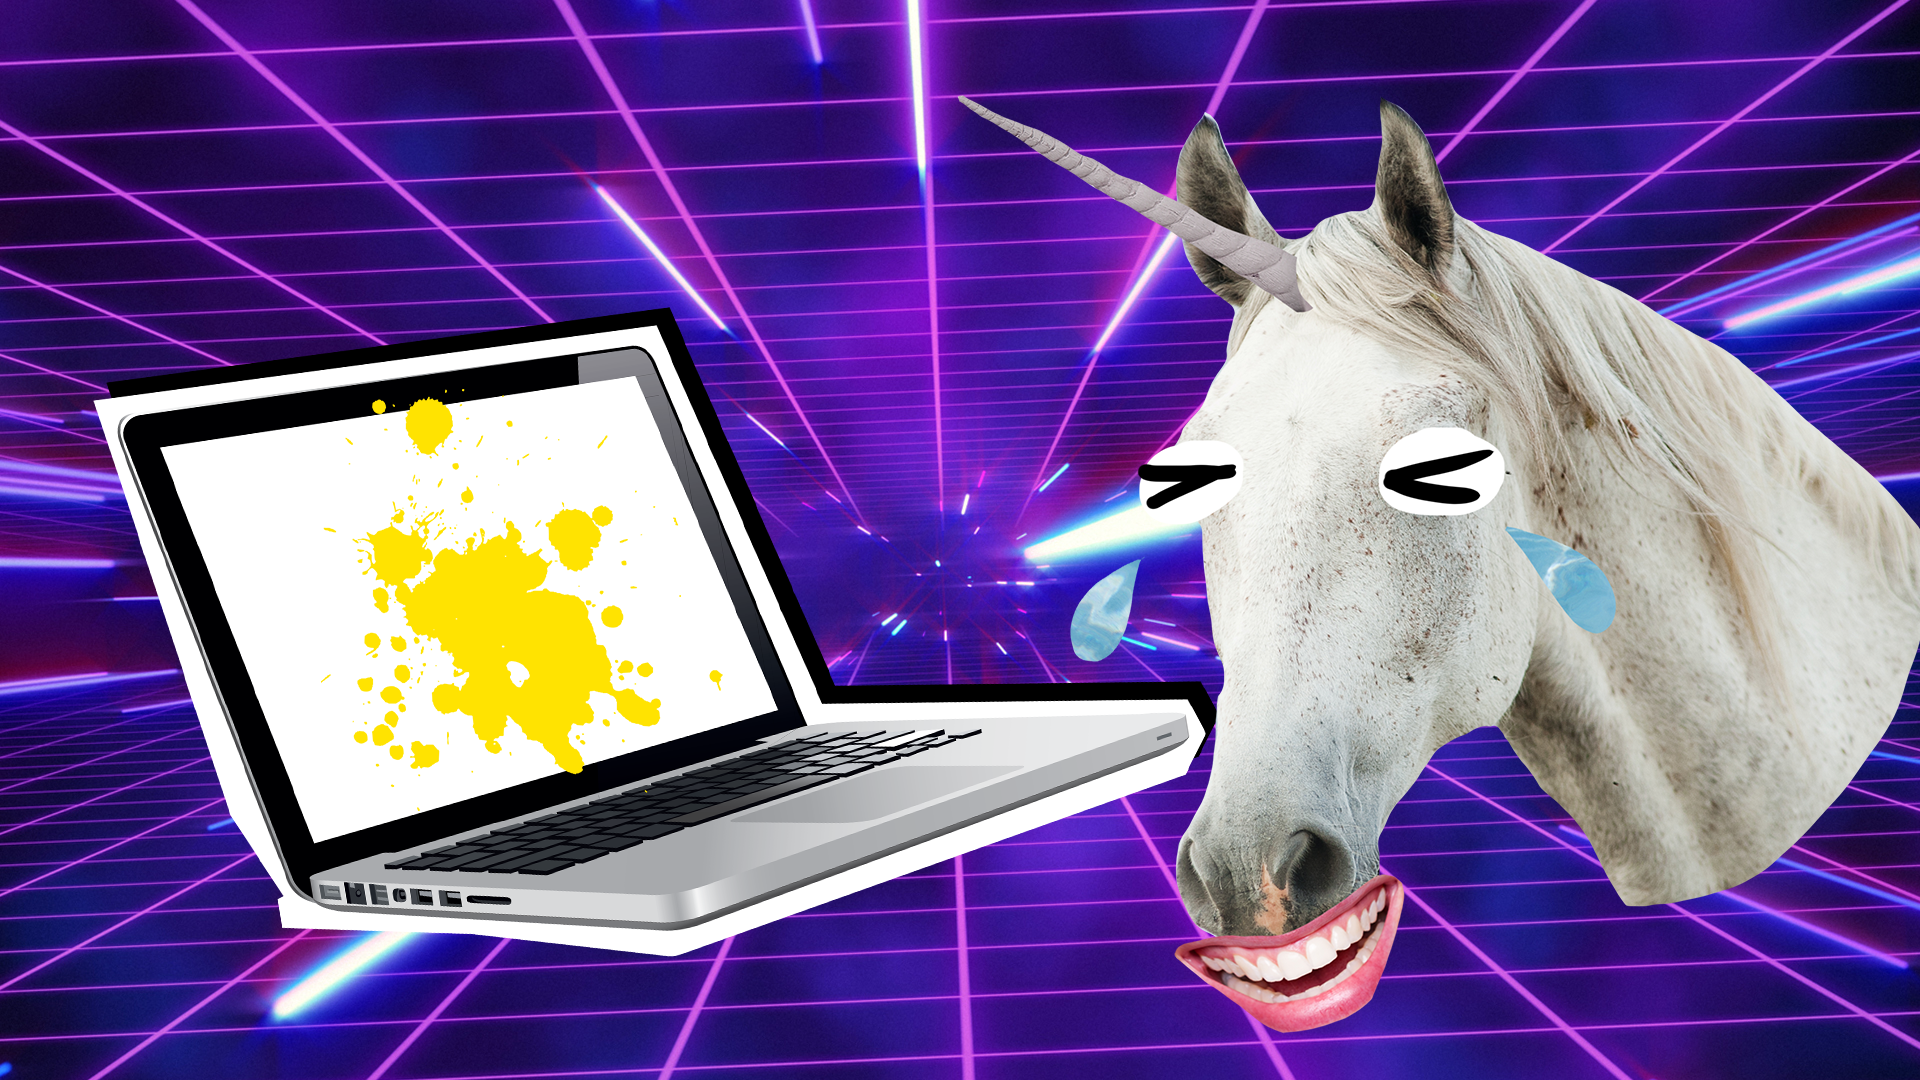 Cry laughing unicorn and a laptop